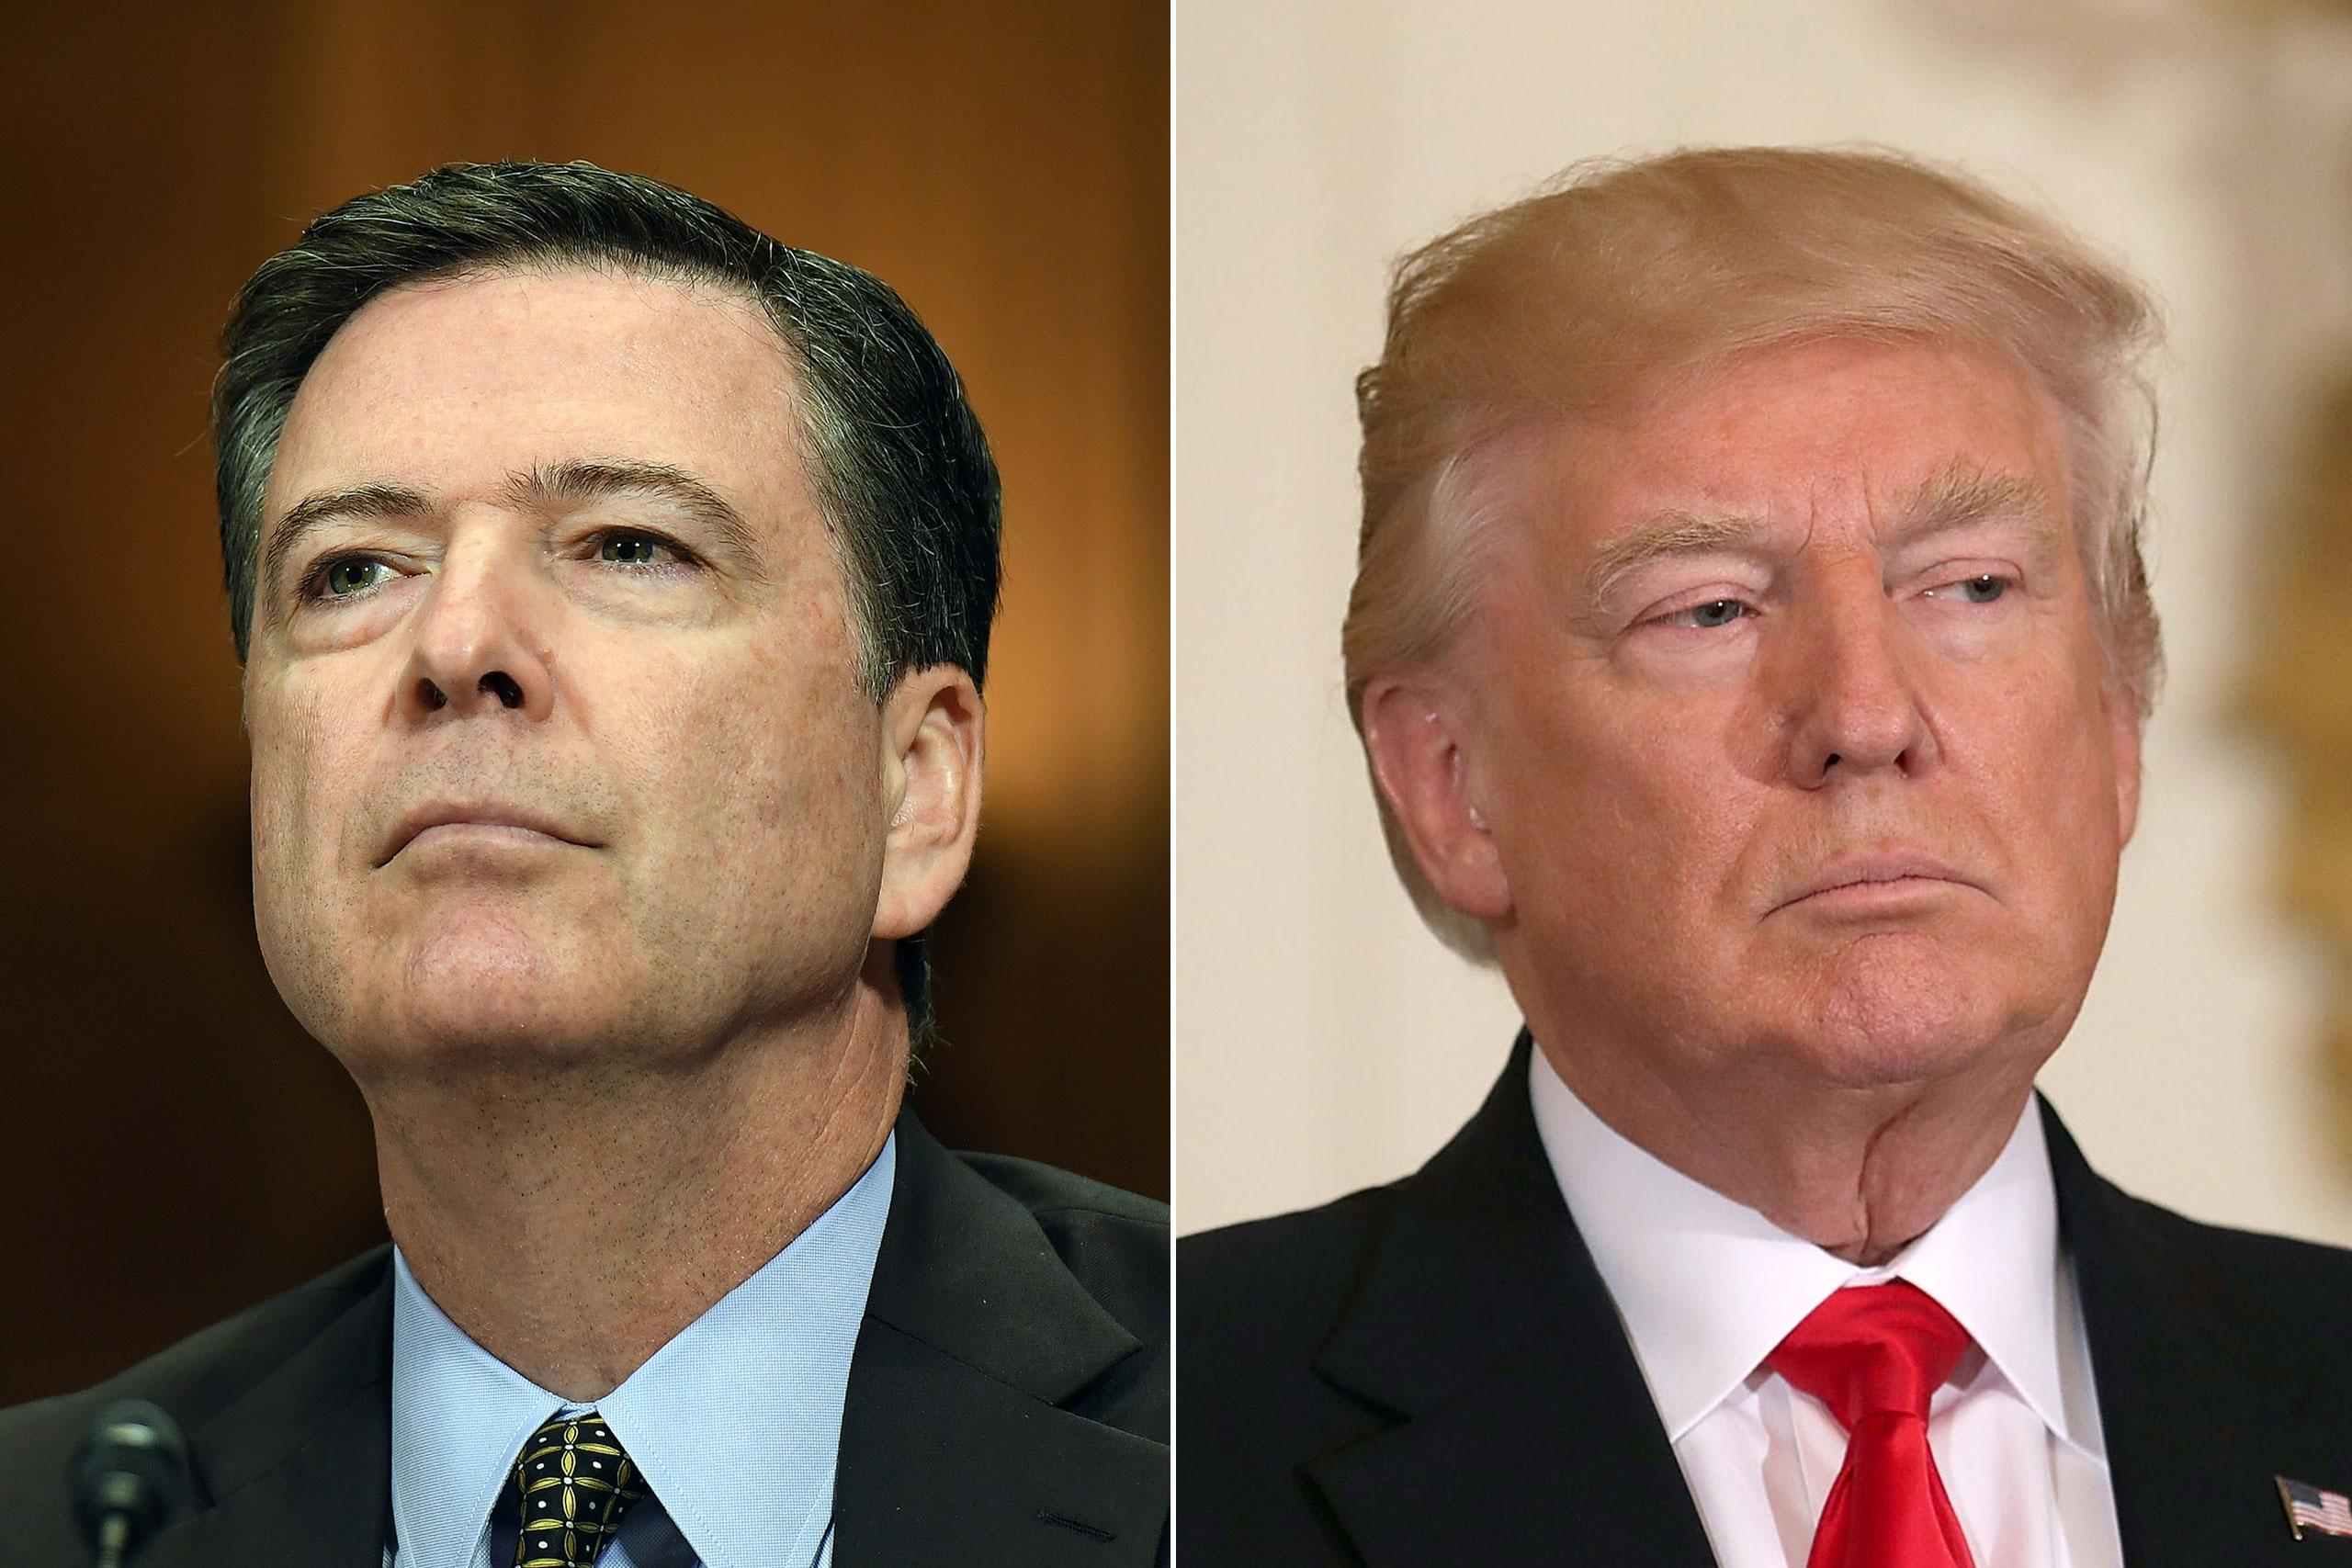 James Comey appears before the Senate Judiciary Committee in Washington on May 3, 2017 (L); Donald Trump in The White House in Washington on May 12, 2017.